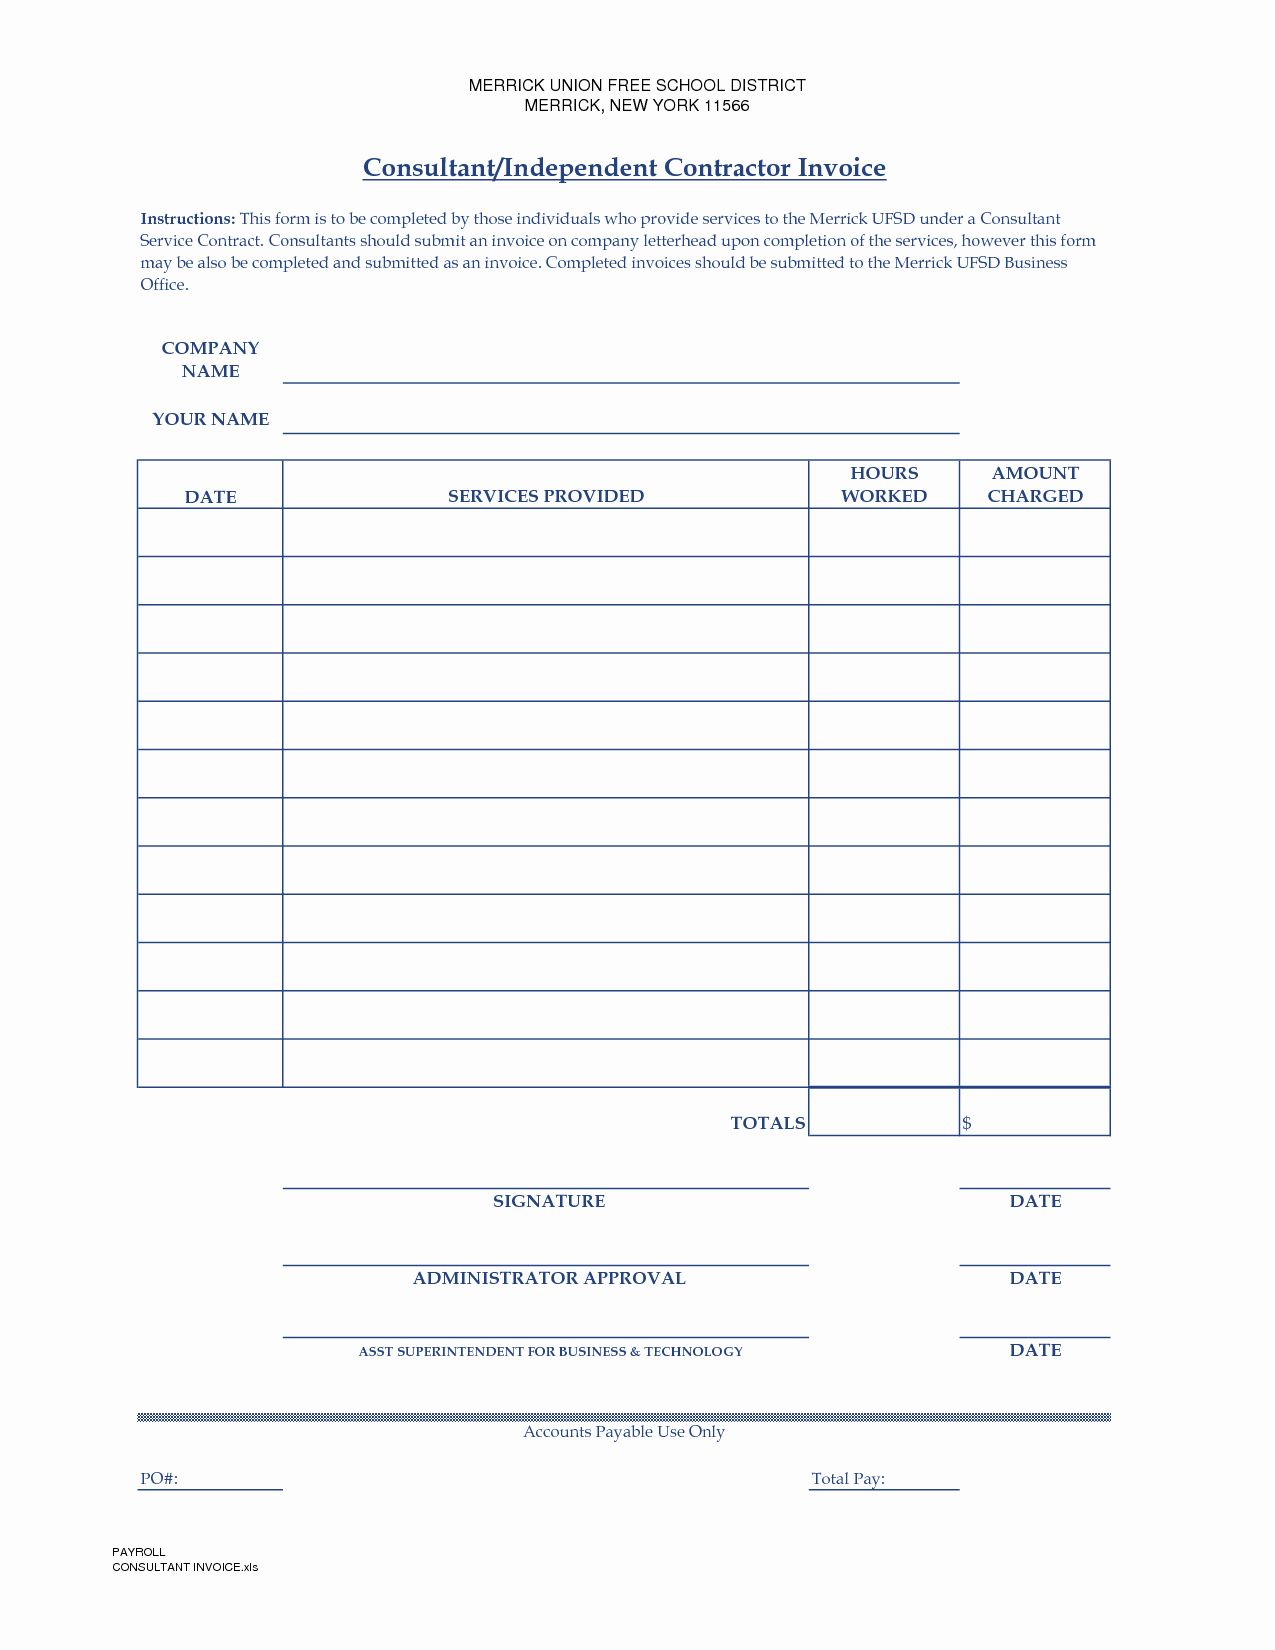 Contractor Invoice Template Word Fresh Independent Contractor Invoice Template